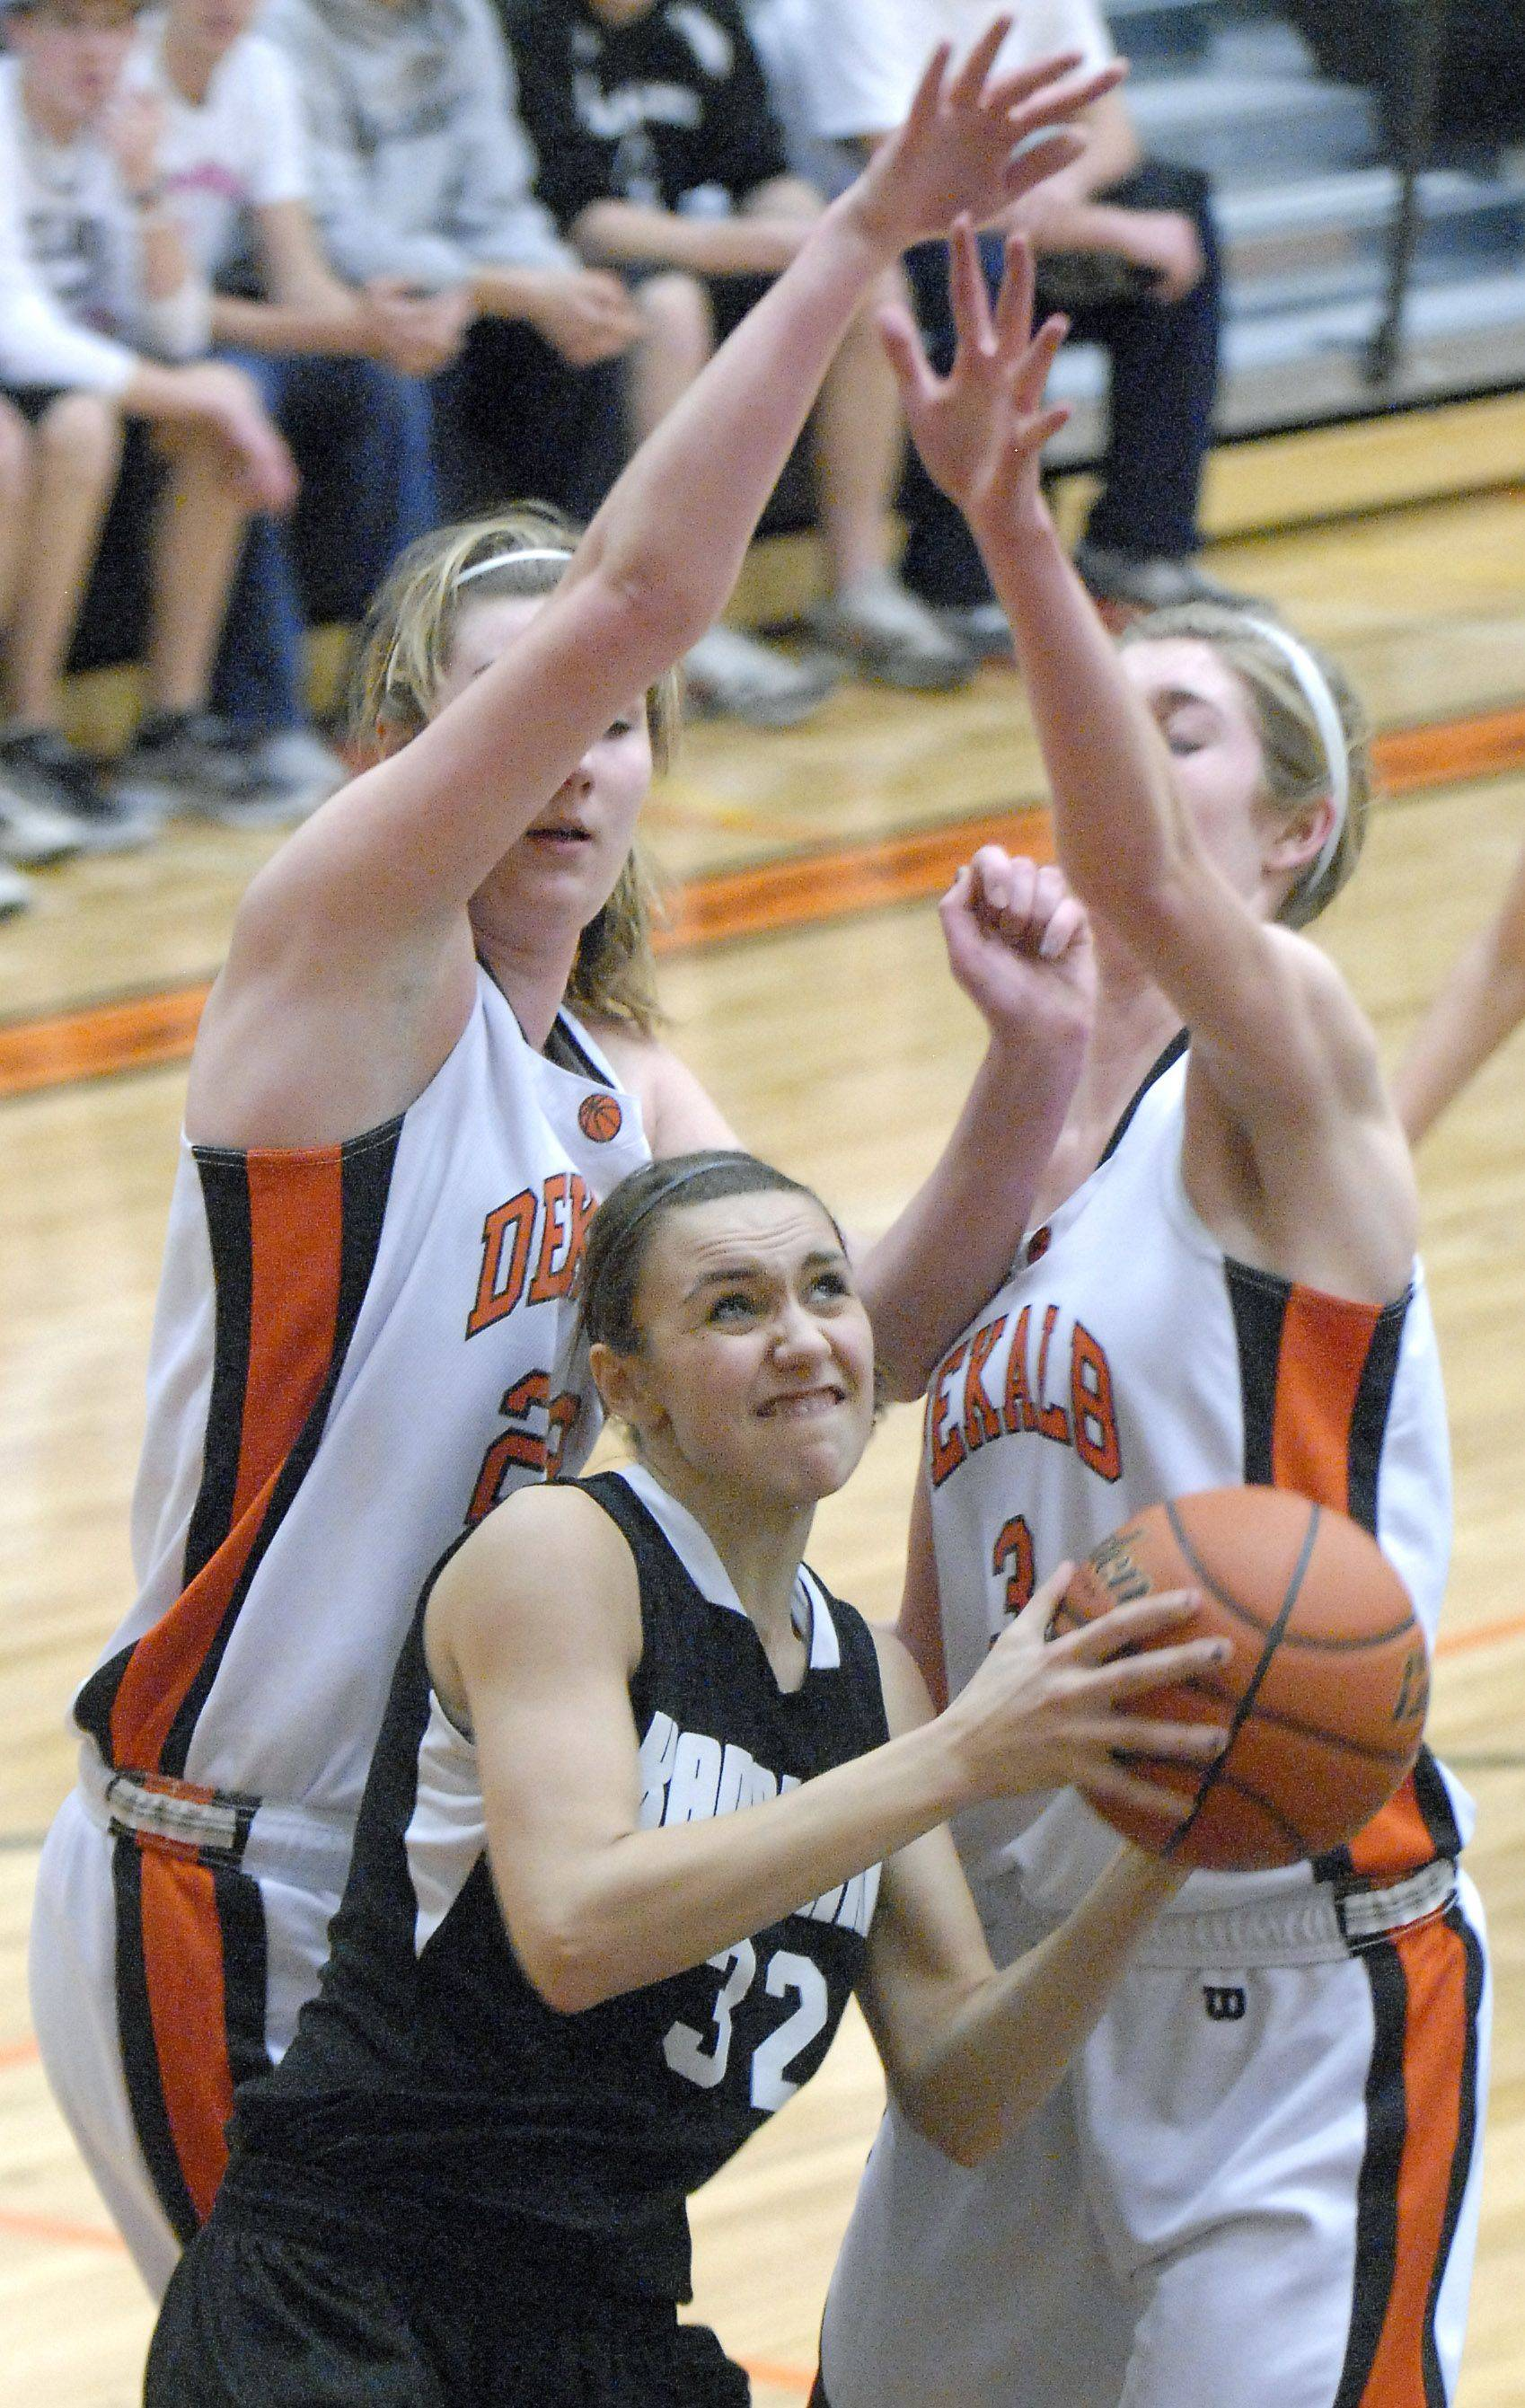 Laura Stoecker/lstoecker@dailyherald.comKaneland's Emma Bradford shoots past a block by DeKalb's Emily Bemis and Courtney Bemis in the first quarter on Tuesday, January 31.